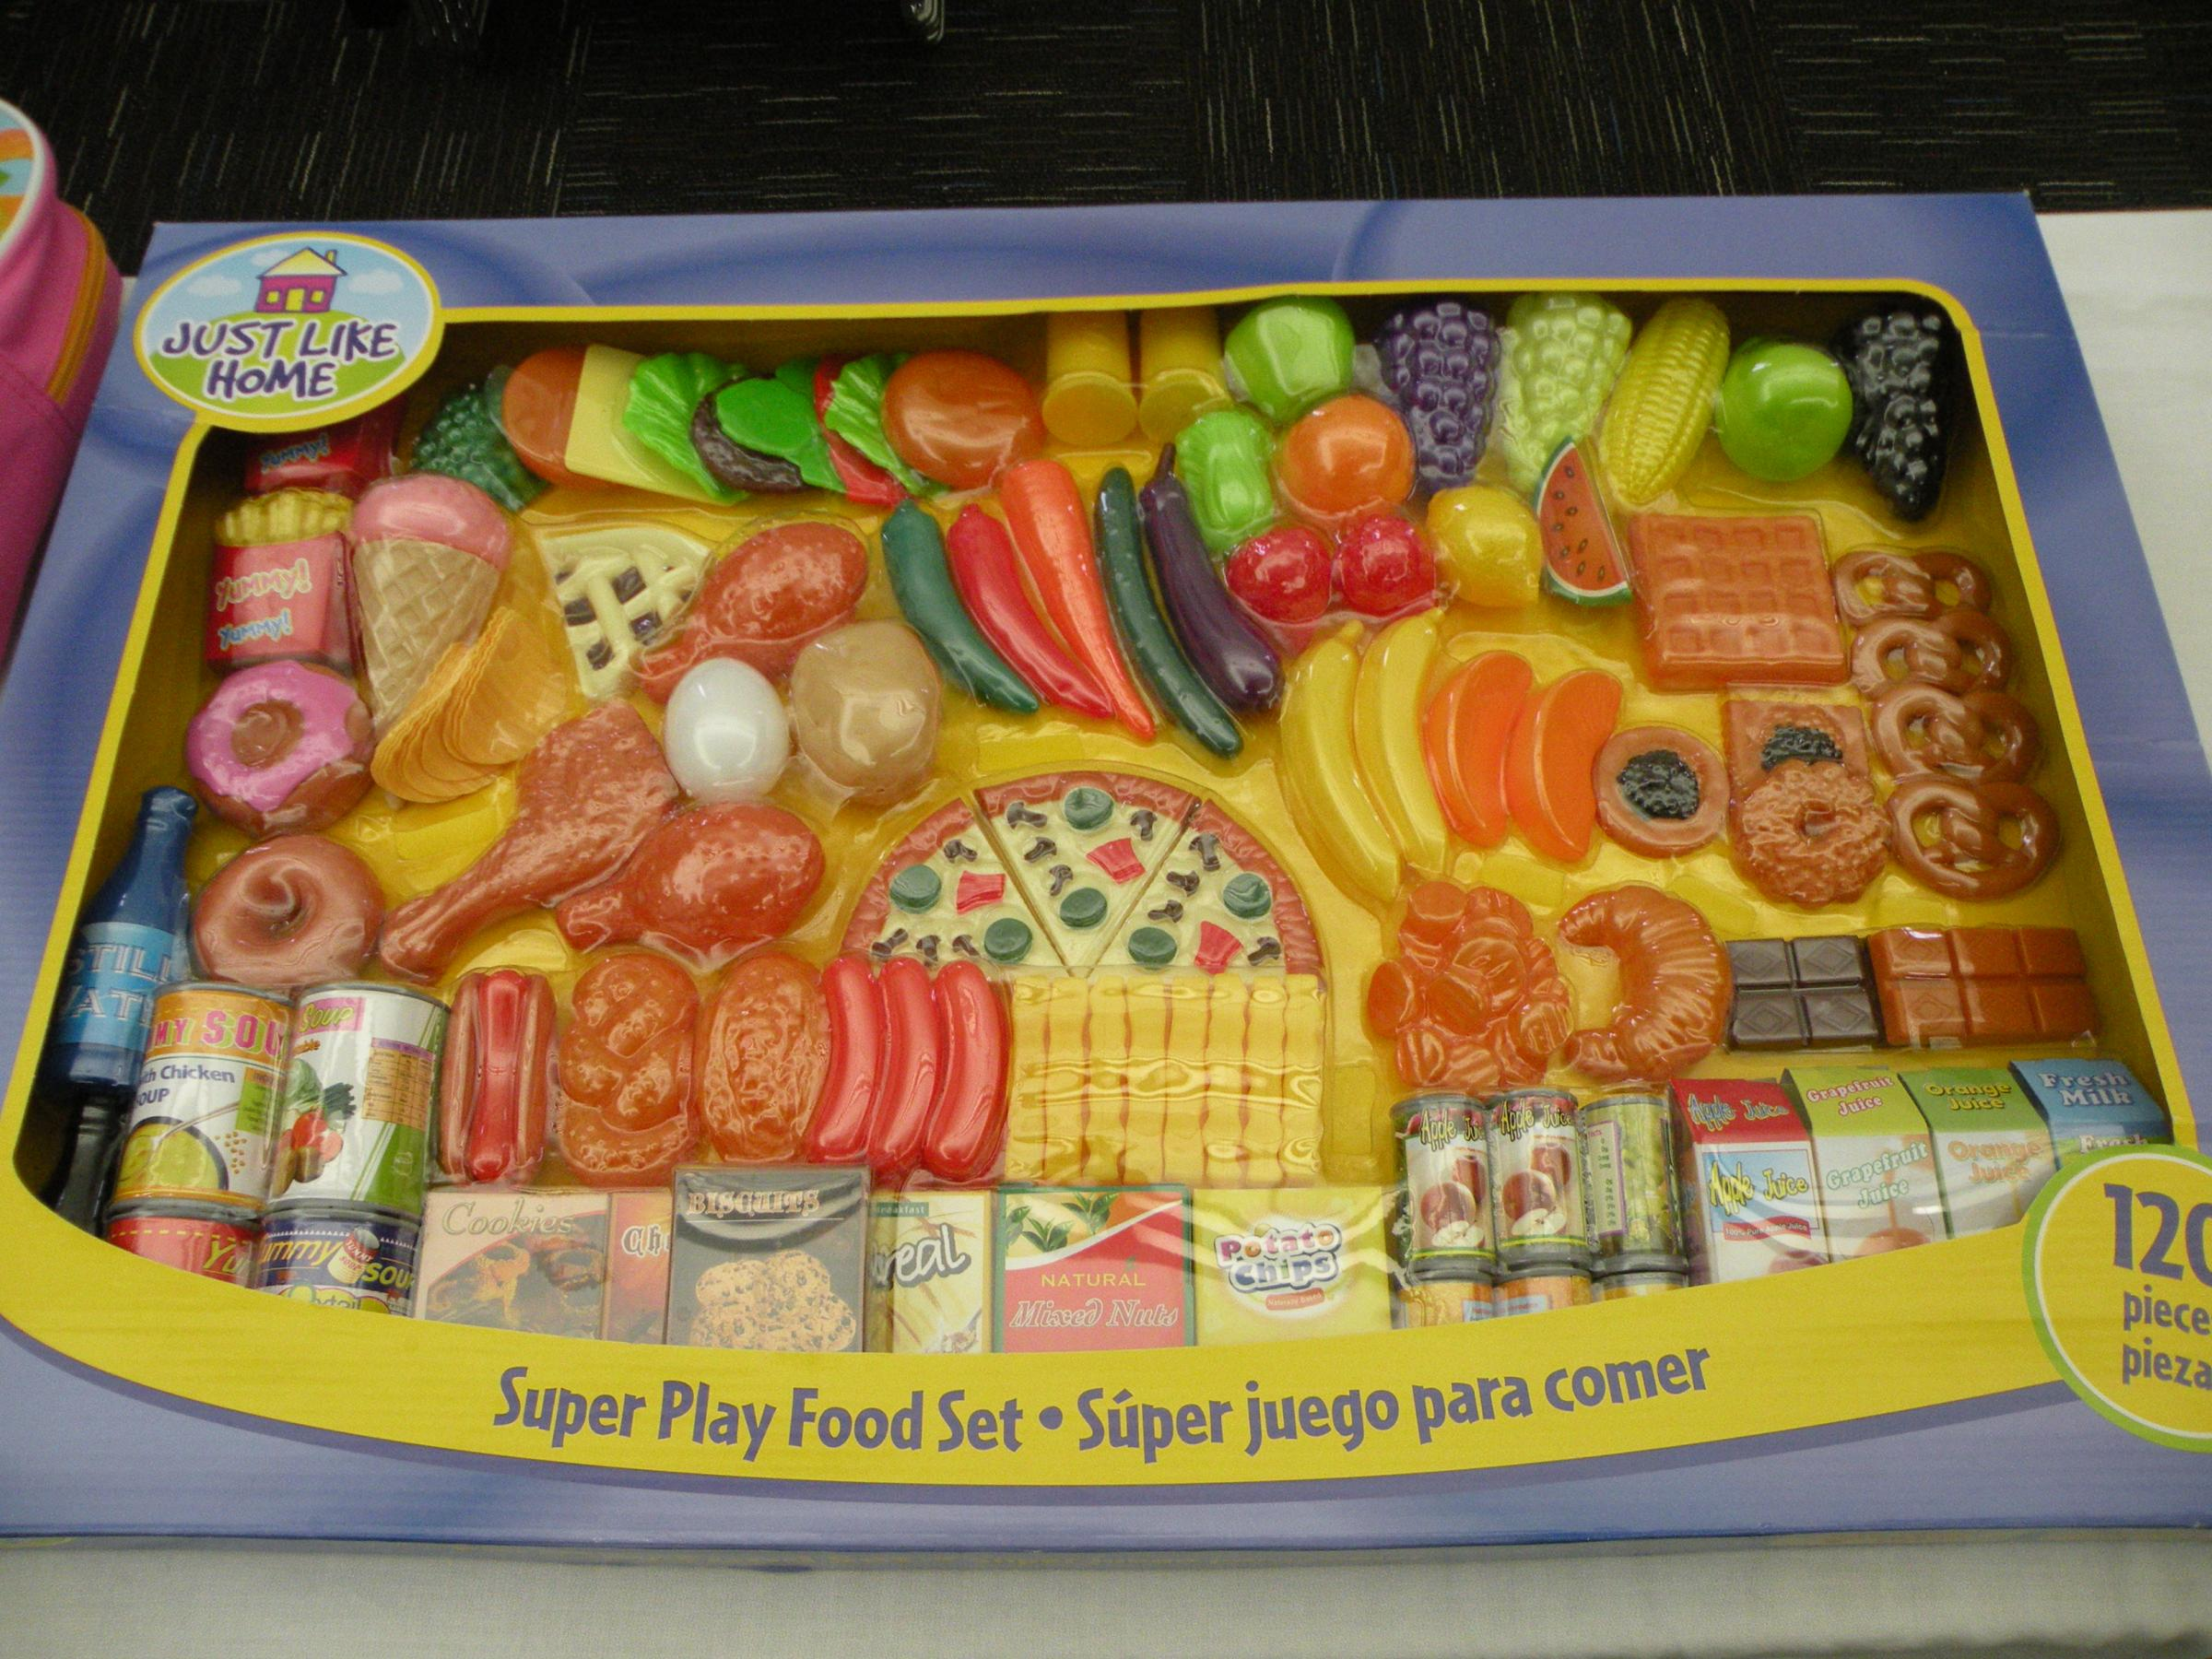 Just Like Home Toy Set : Magnets choking hazards top annual report on dangerous toys knkx